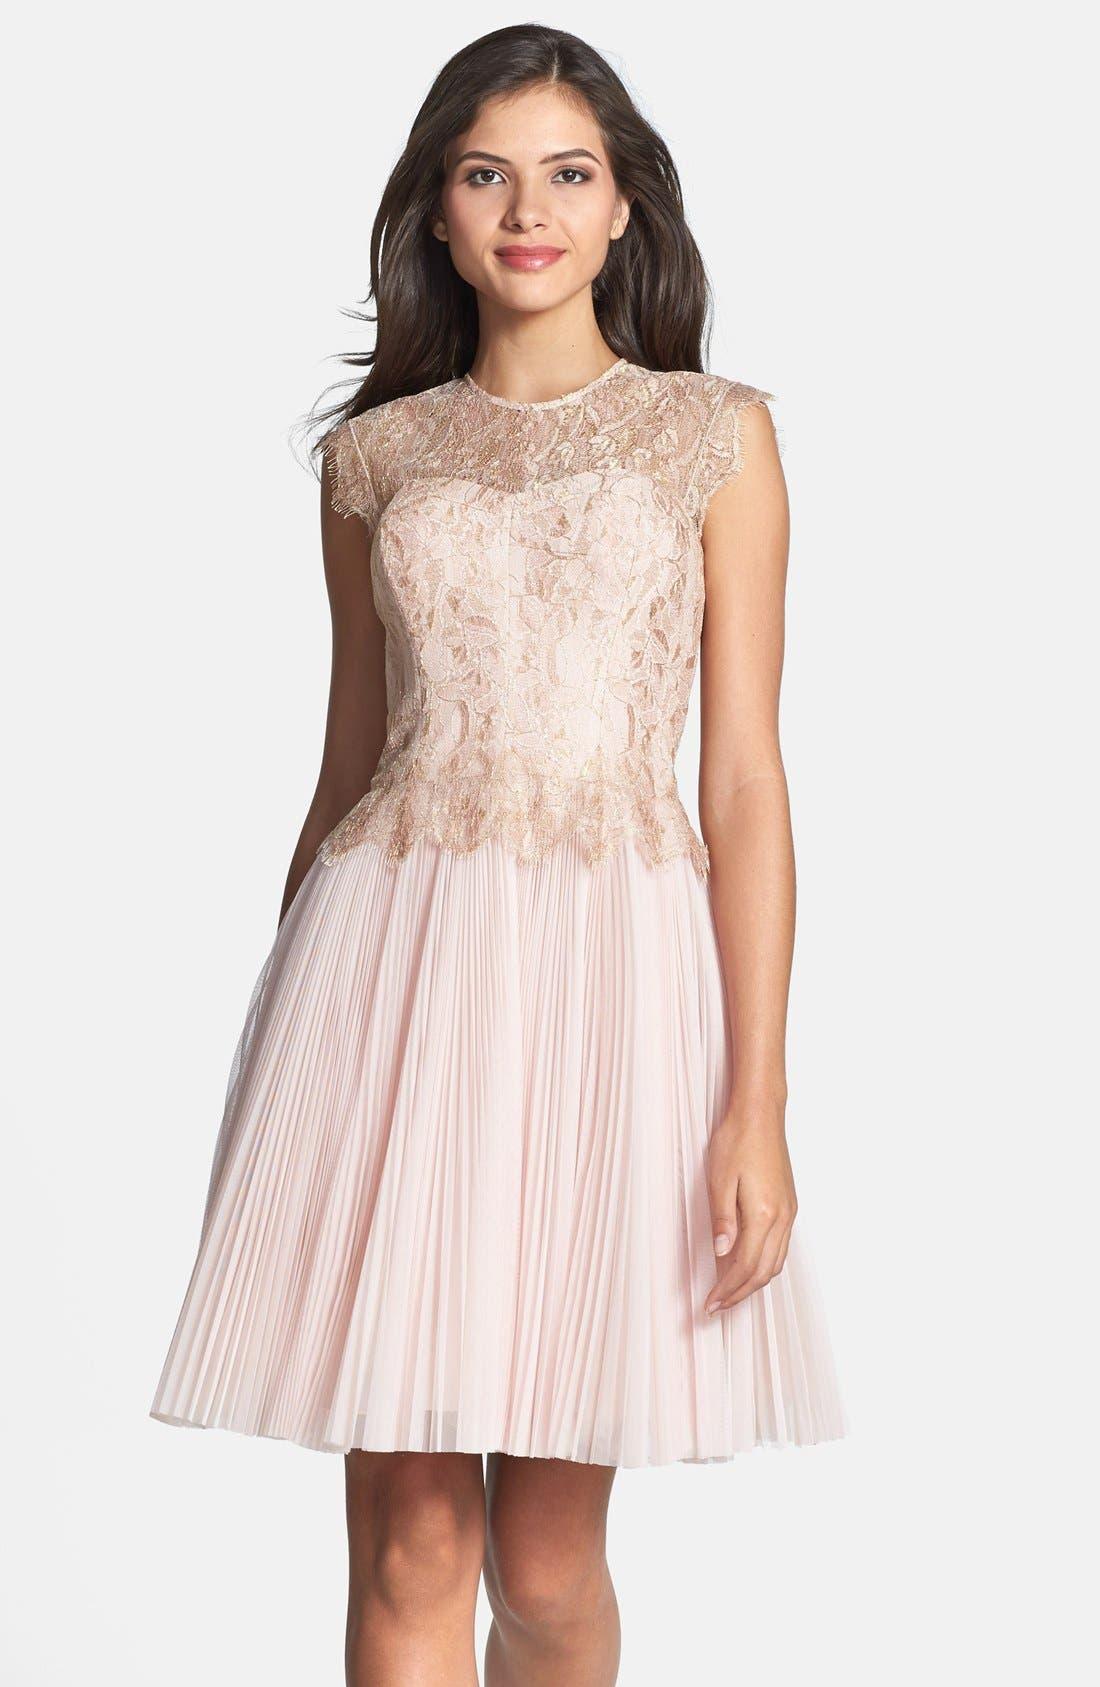 'Remma' Metallic Lace Overlay Fit & Flare Dress,                             Main thumbnail 1, color,                             Nude Pink